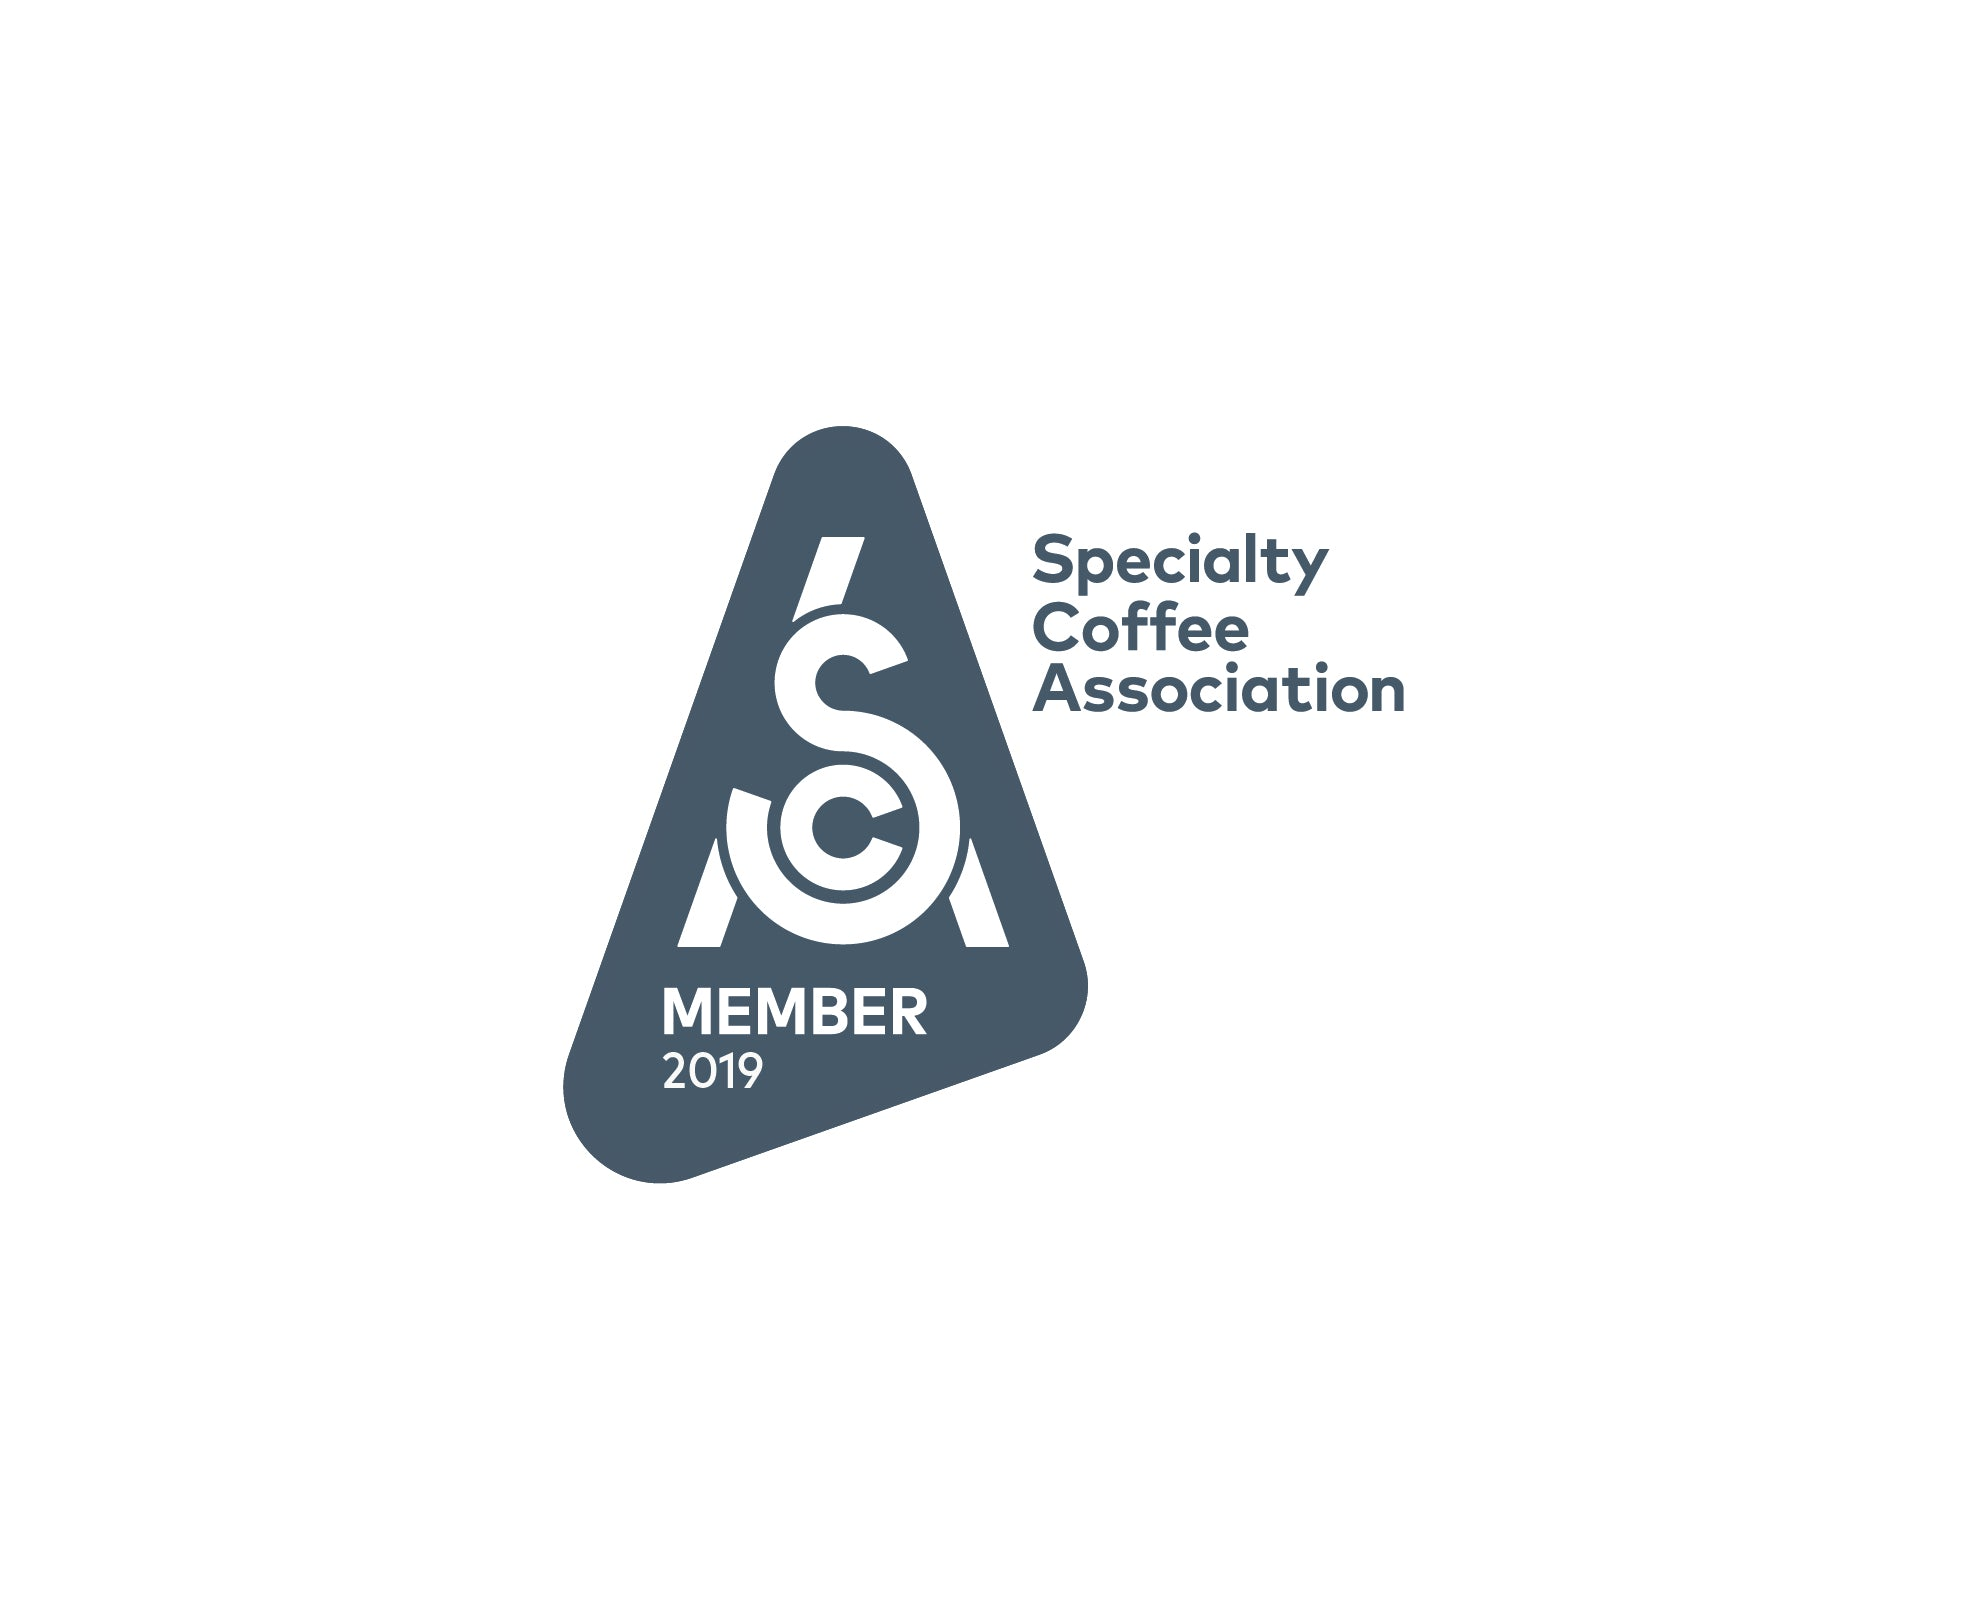 What is the Specialty Coffee Association?